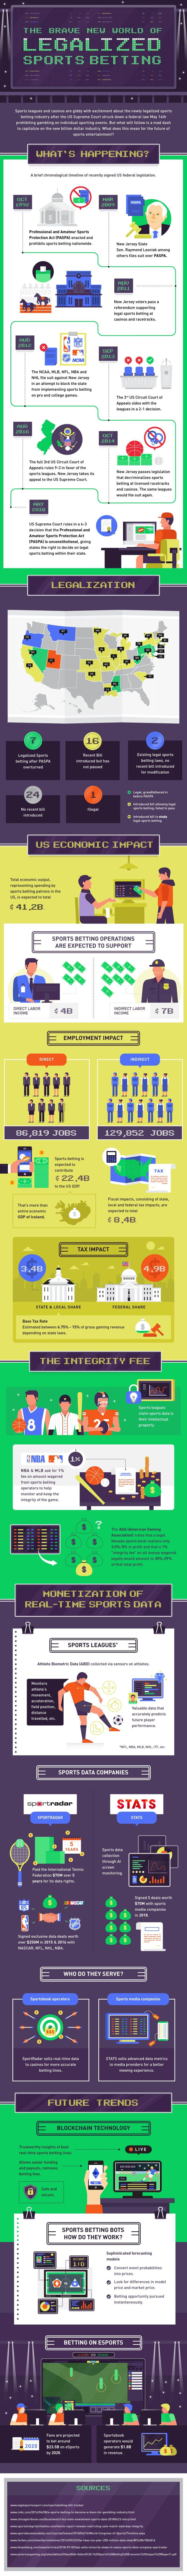 Infographic showing the legalisation of sports betting in the United States